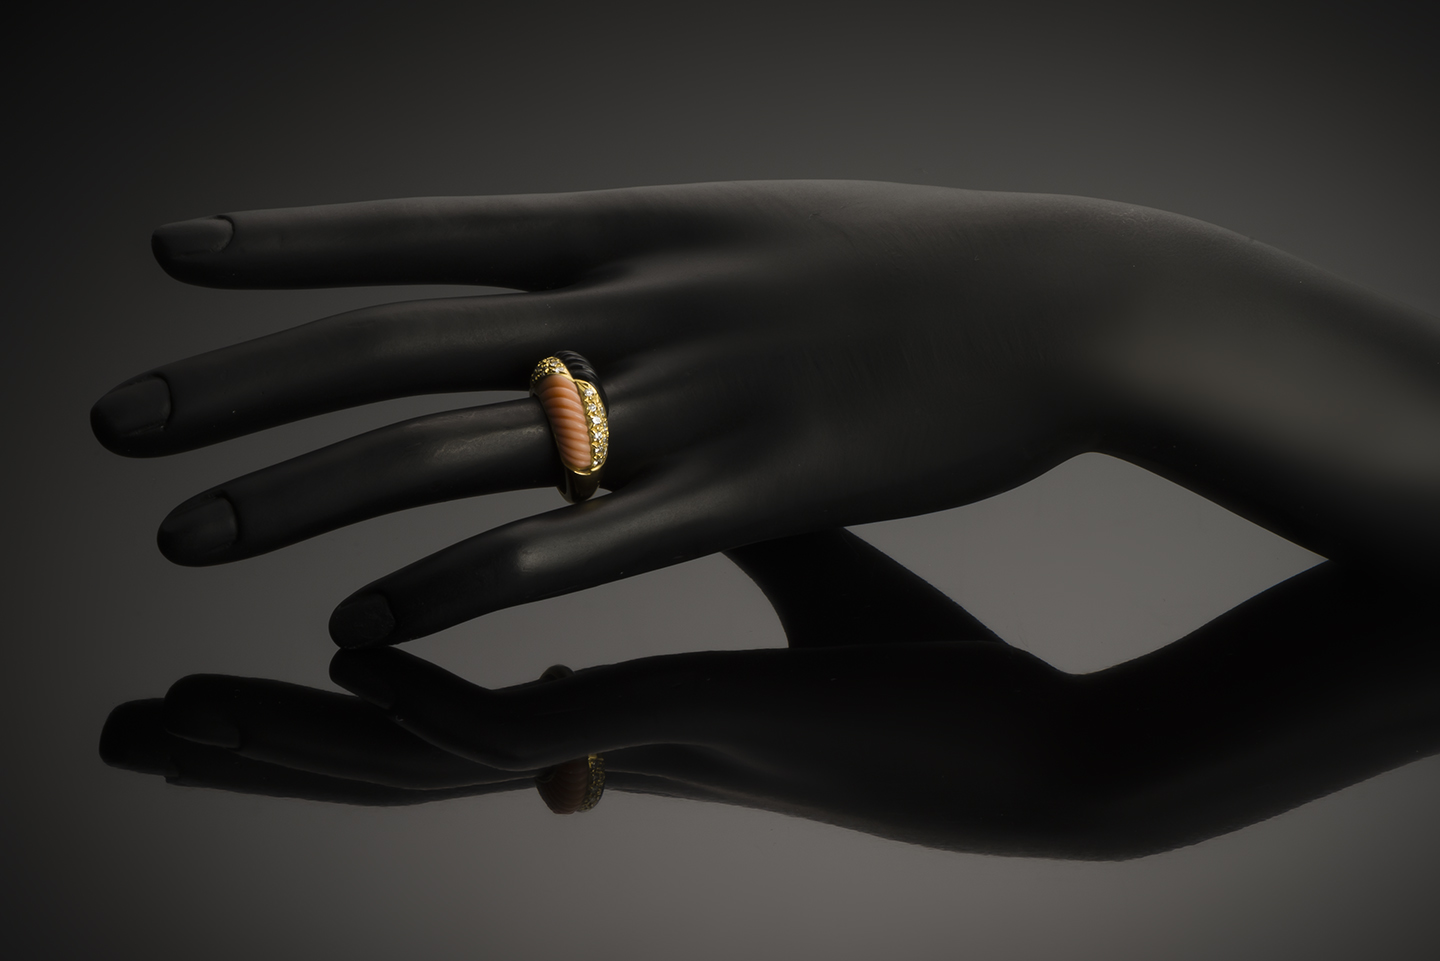 Bague corail onyx diamants vers 1970-2